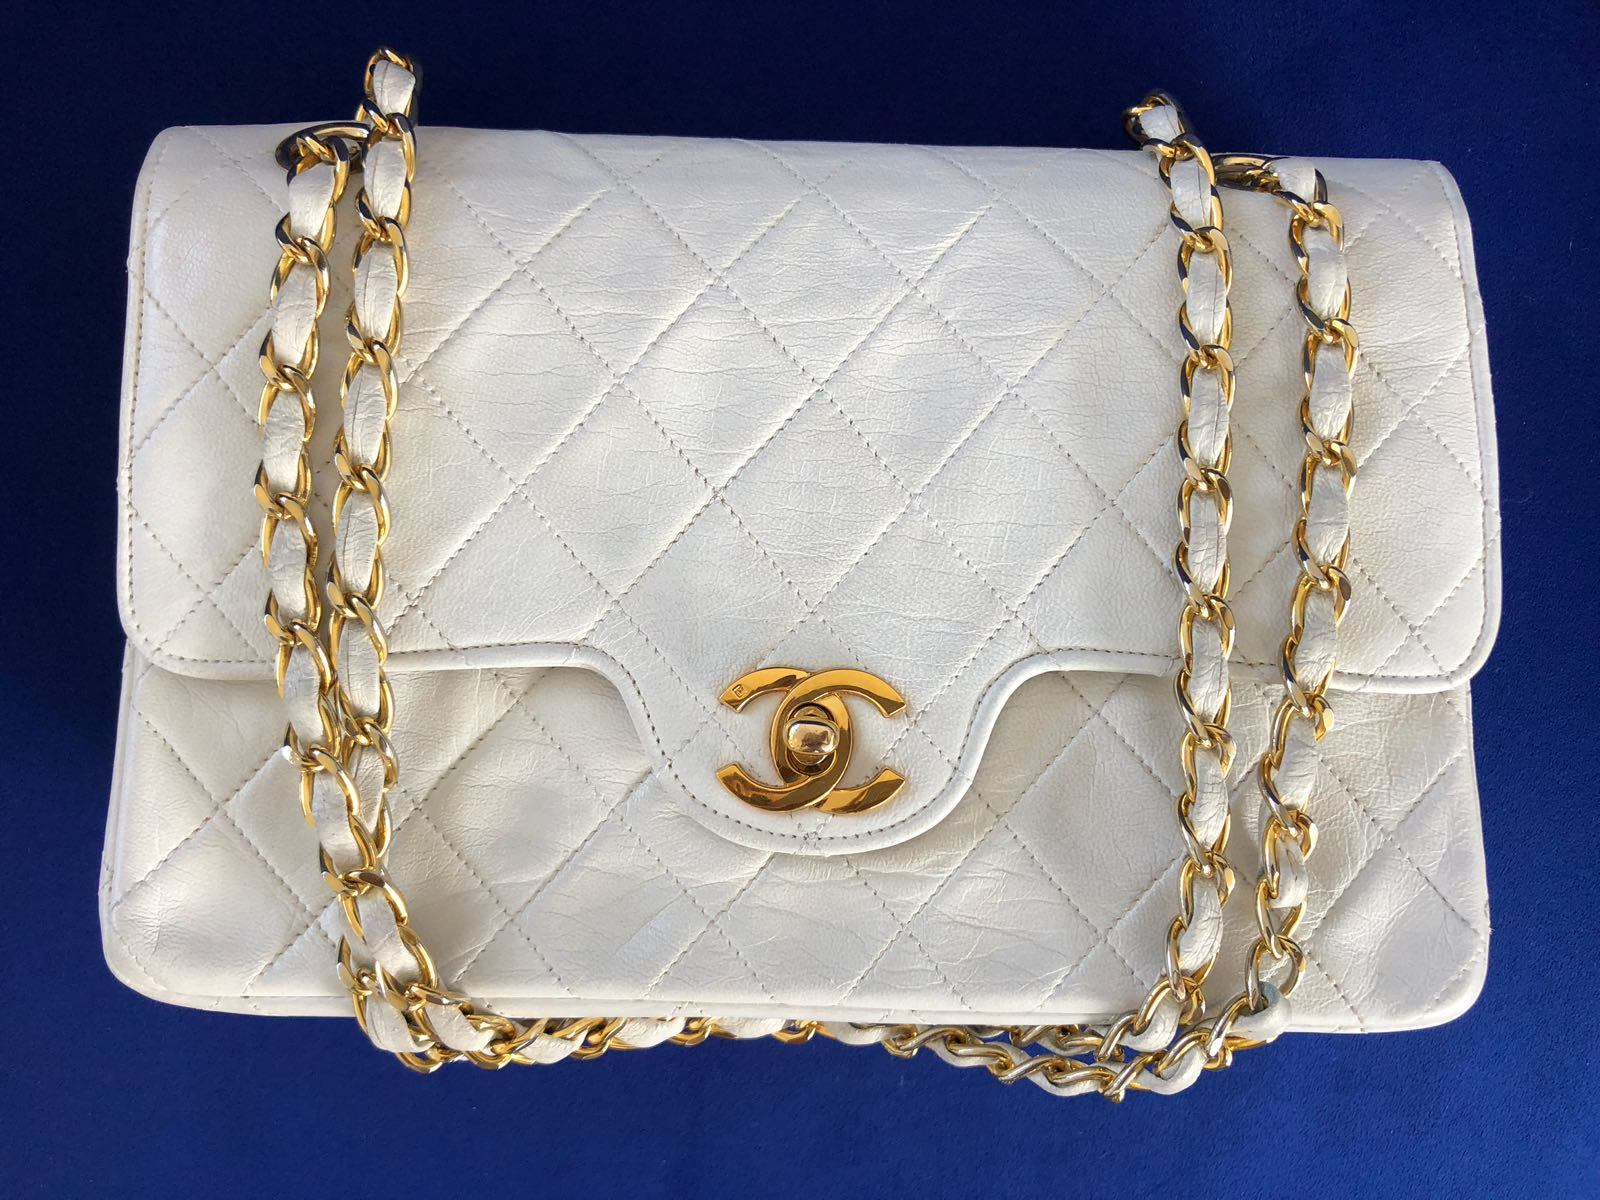 Chanel Timeless Leather Double Flap Bag